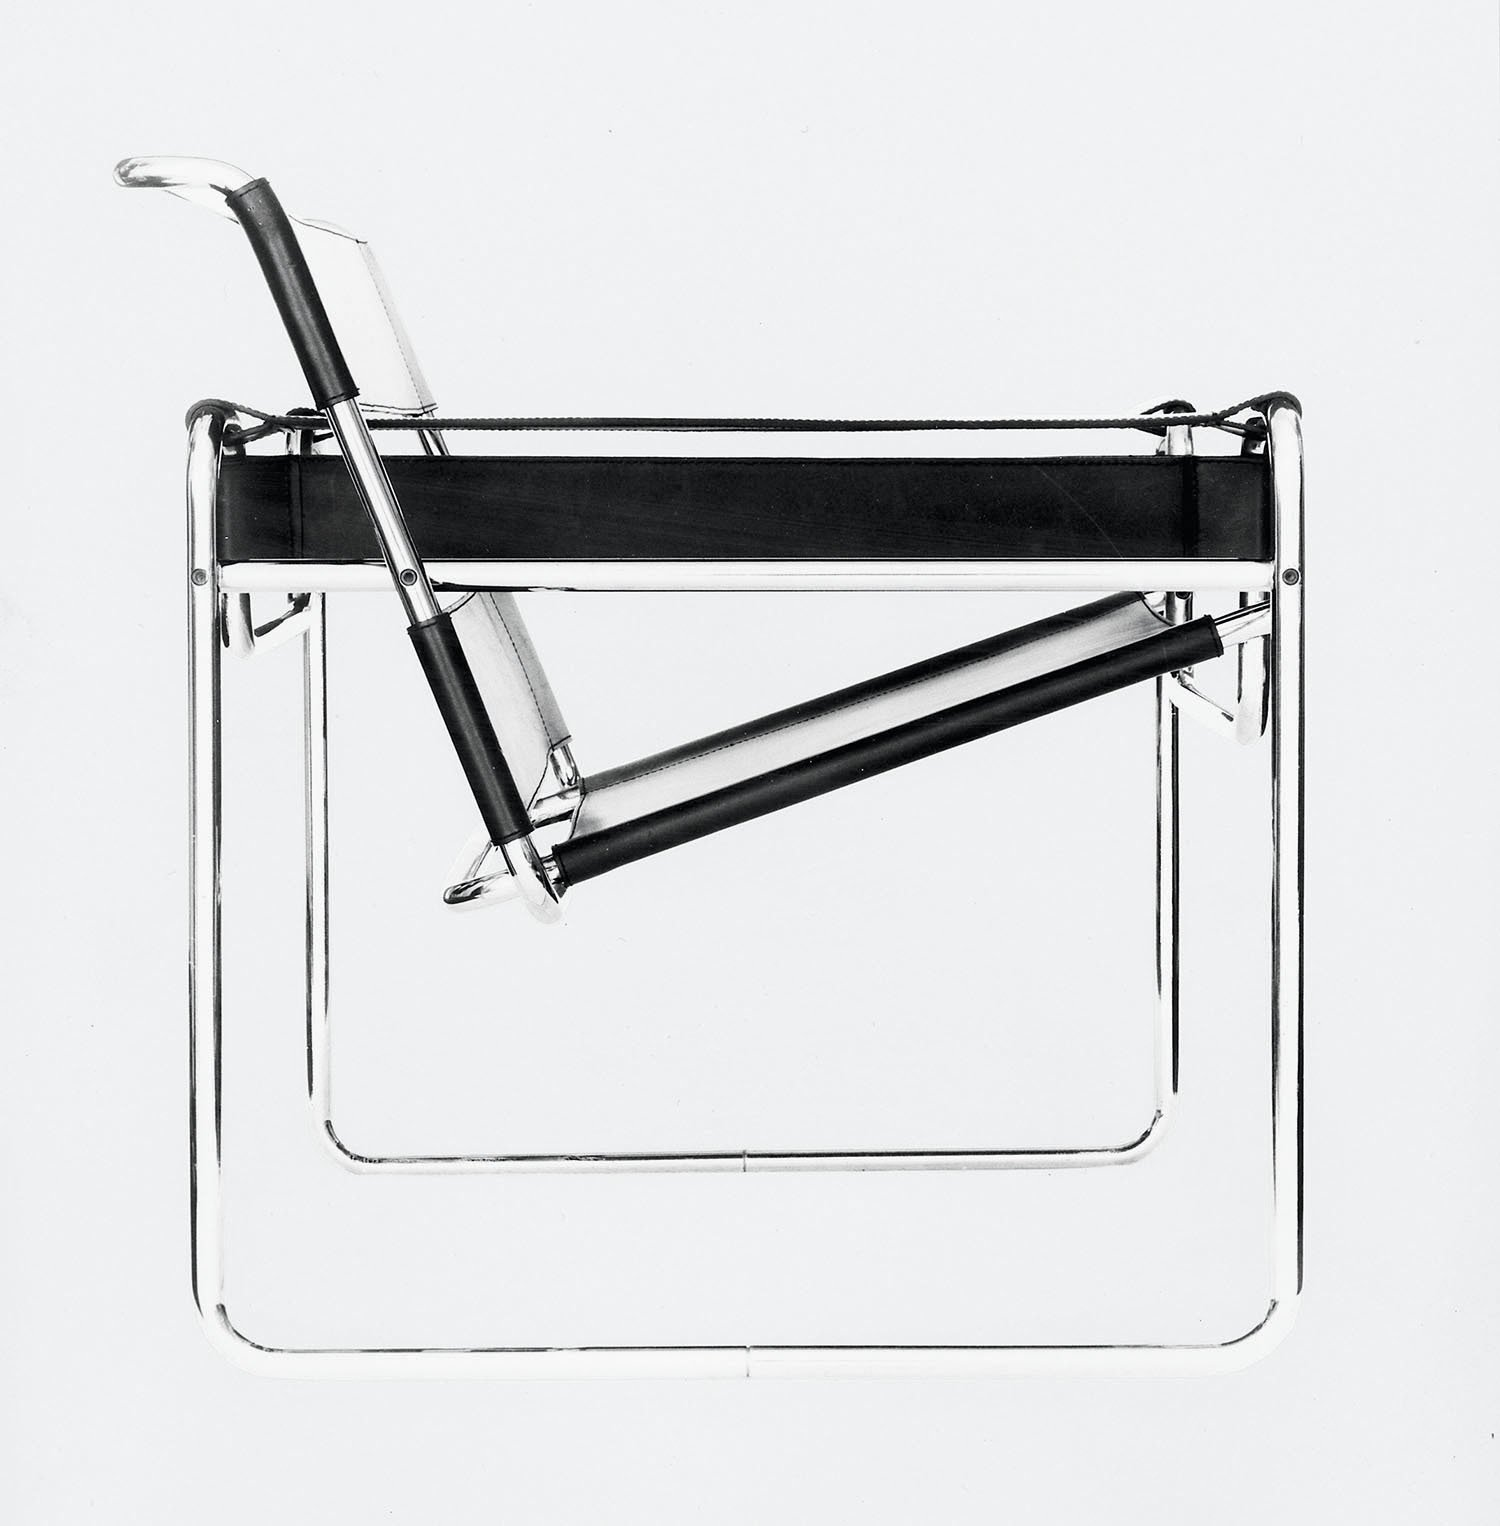 Fascinated by his bicycle, Breuer conducted early experimentations with tubular steel that resulted in the iconic Wassily chair, the first of many furnishings that he made with the material. (1925)  Bicycle, Bicycle from From Bauhaus Student to Brutalist Supreme: Highlights by Marcel Breuer